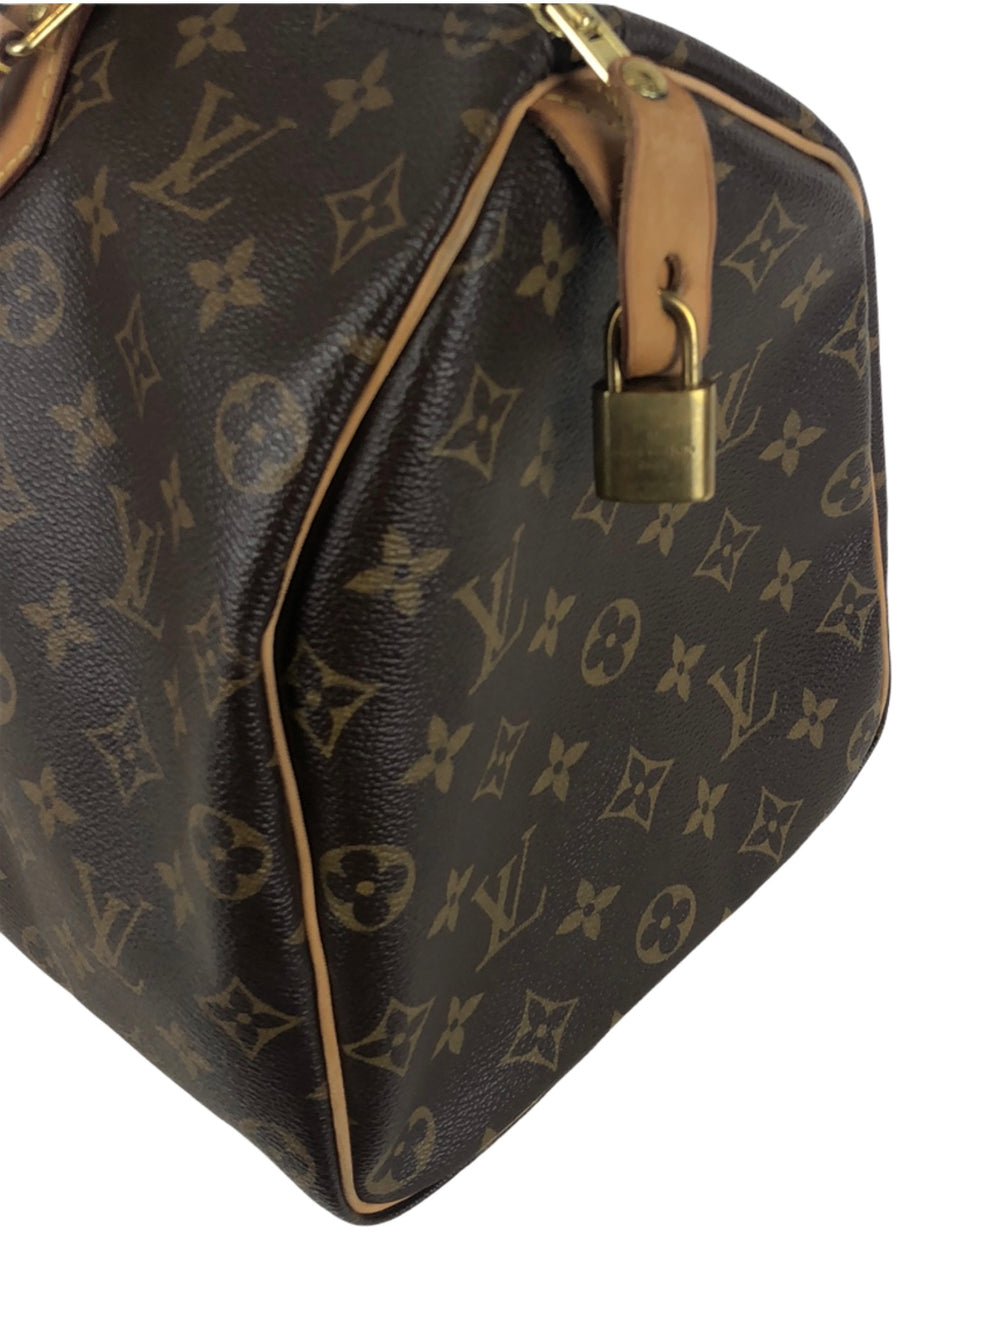 Louis Vuitton Monogram Speedy 35 - As Seen on Instagram 11/10/2020